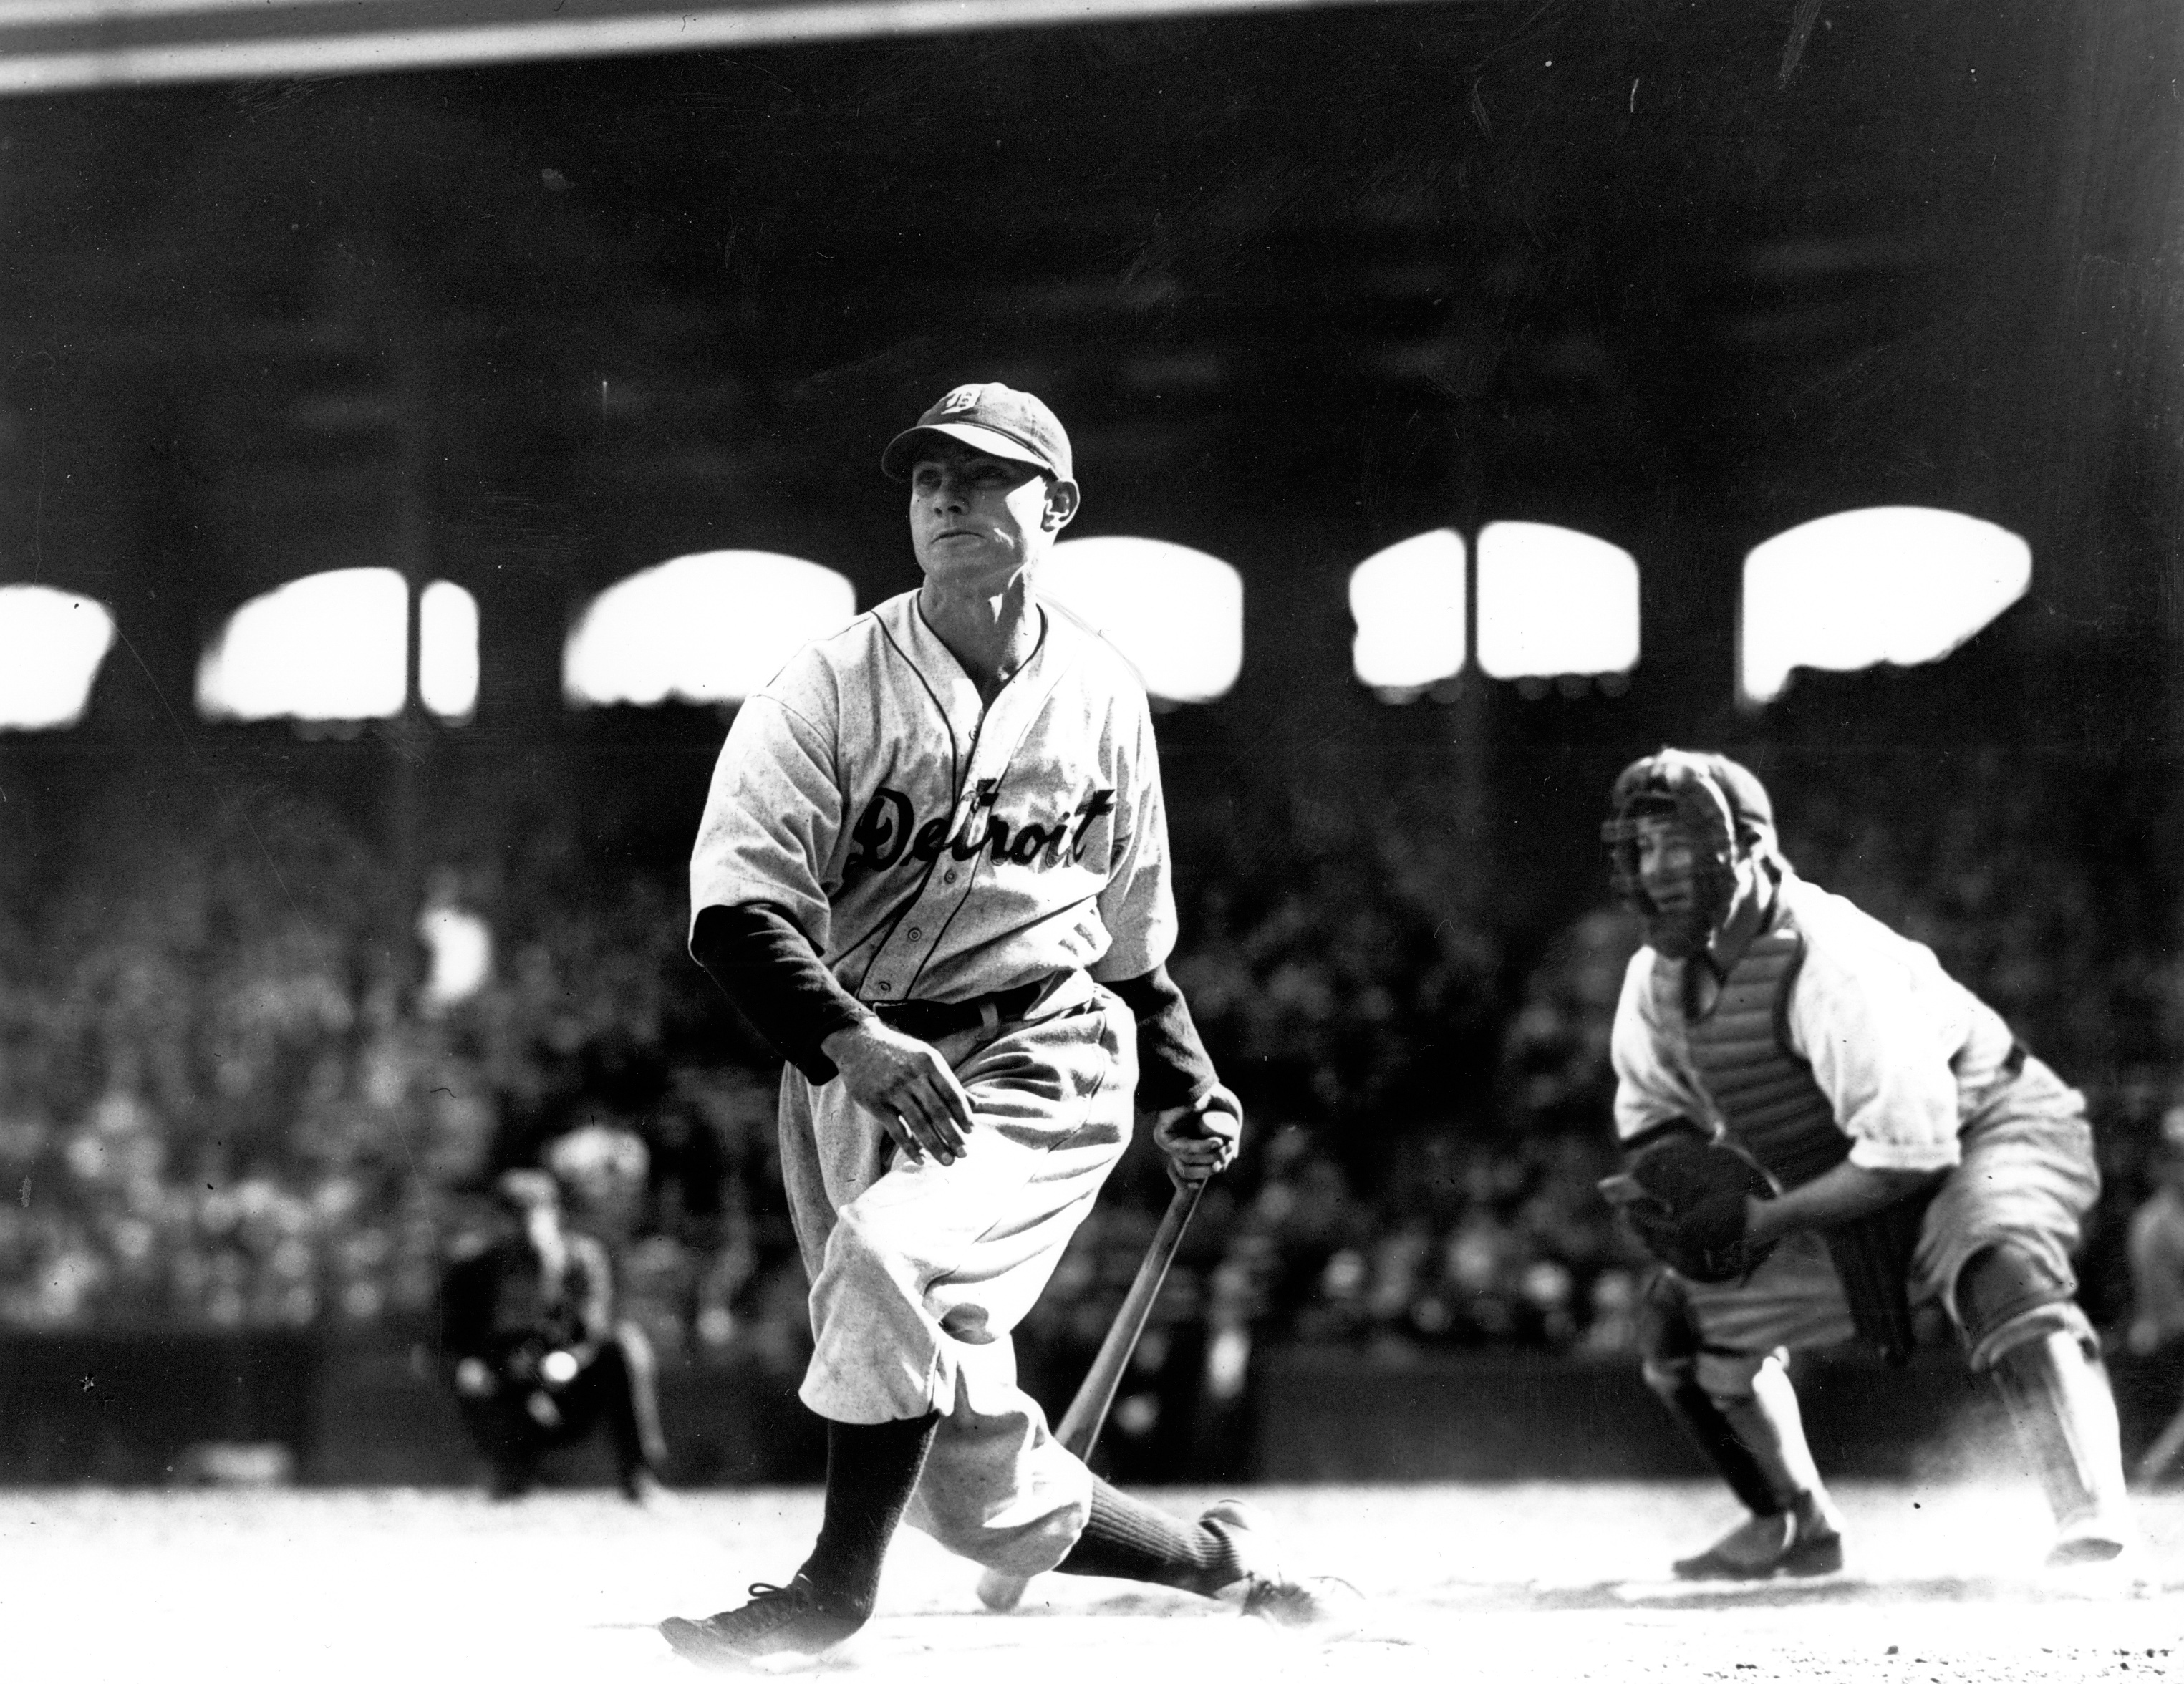 Outfielder hit for high averages, rarely walked or struck out. In 1936, he collected 55 doubles to rank second in the AL.